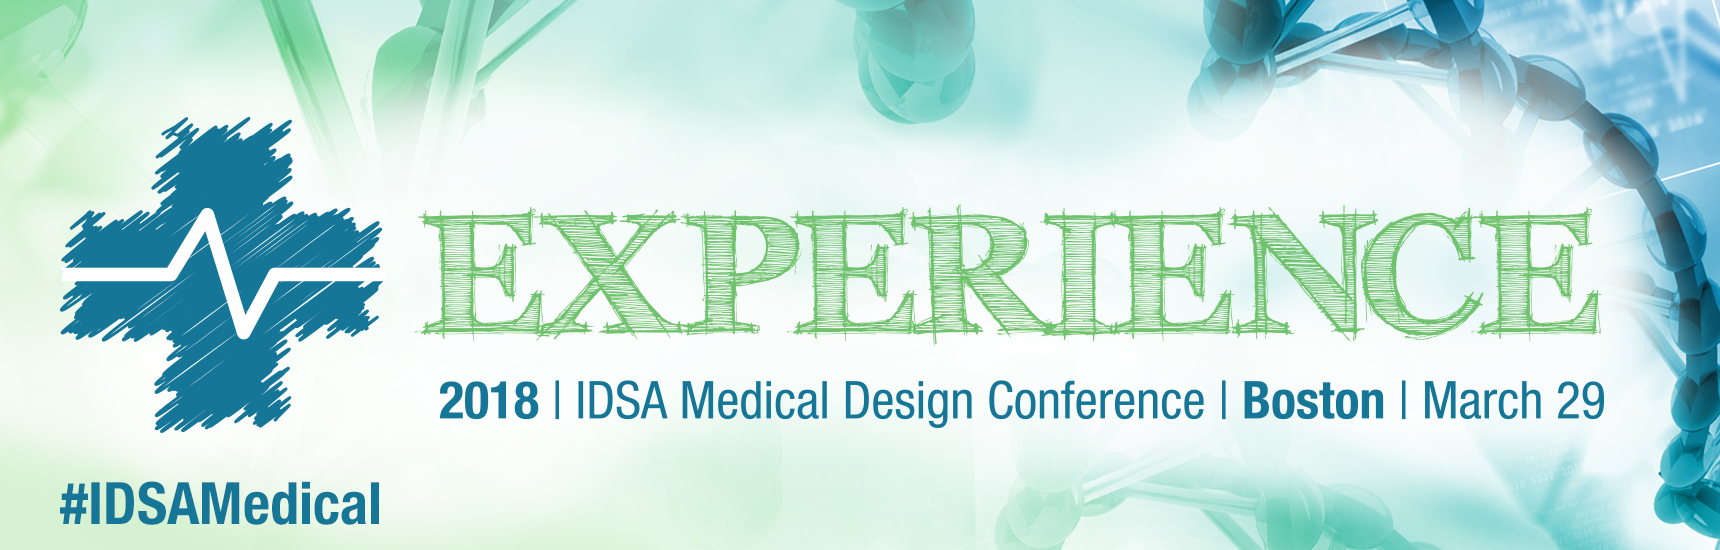 medical design conference 2018 experience industrial designers